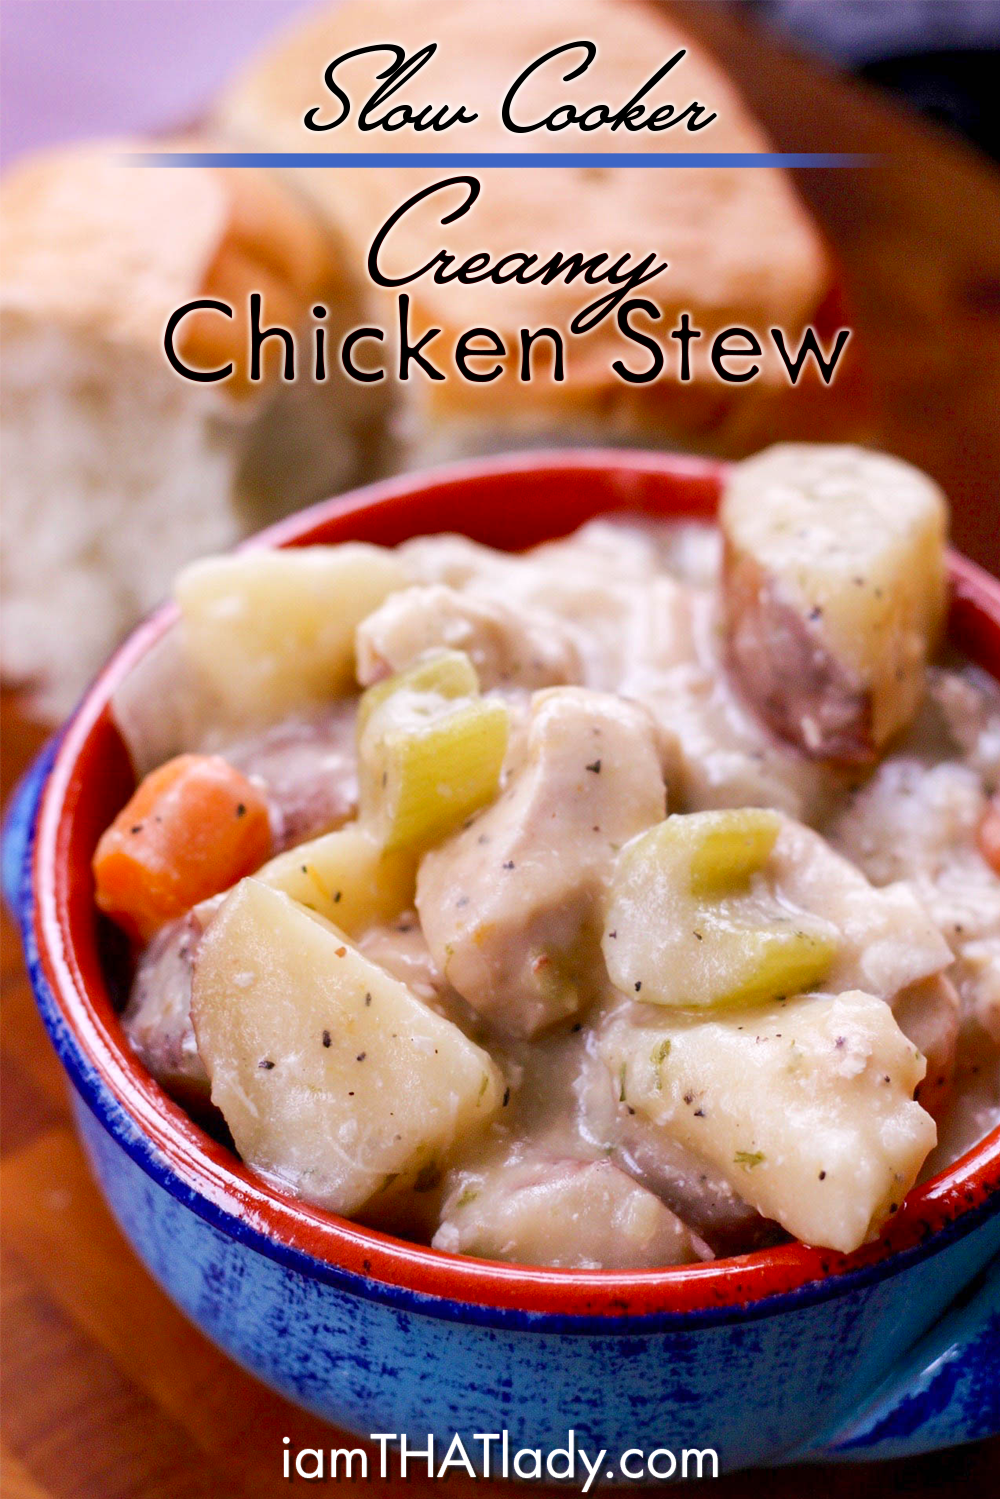 Slow Cooker Creamy Chicken Stew - I am THAT Lady